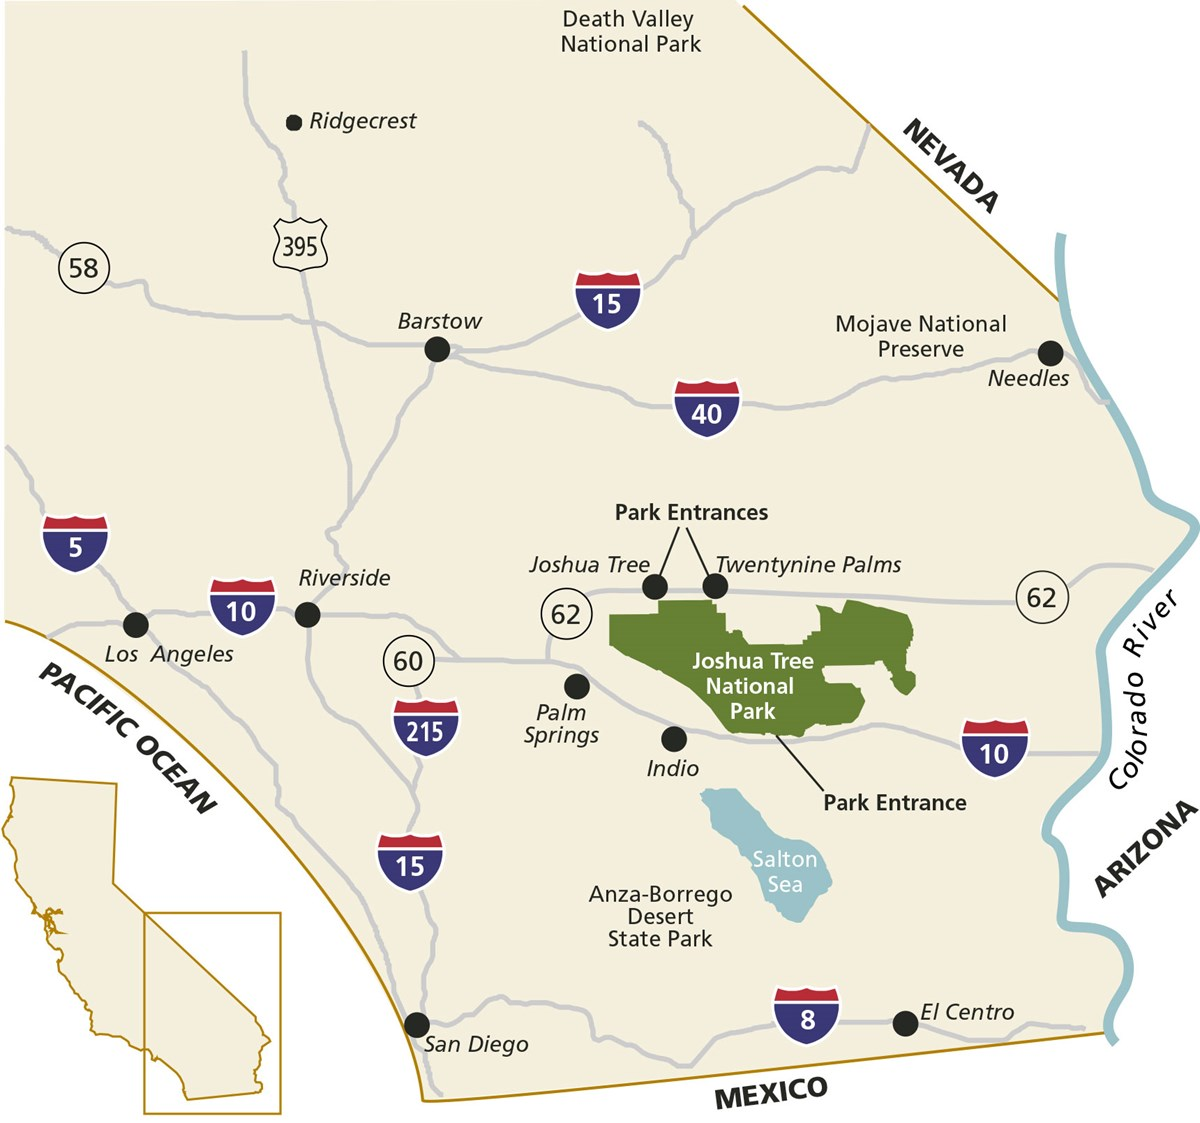 Joshua Tree National Park Map Directions & Transportation   Joshua Tree National Park (U.S.  Joshua Tree National Park Map